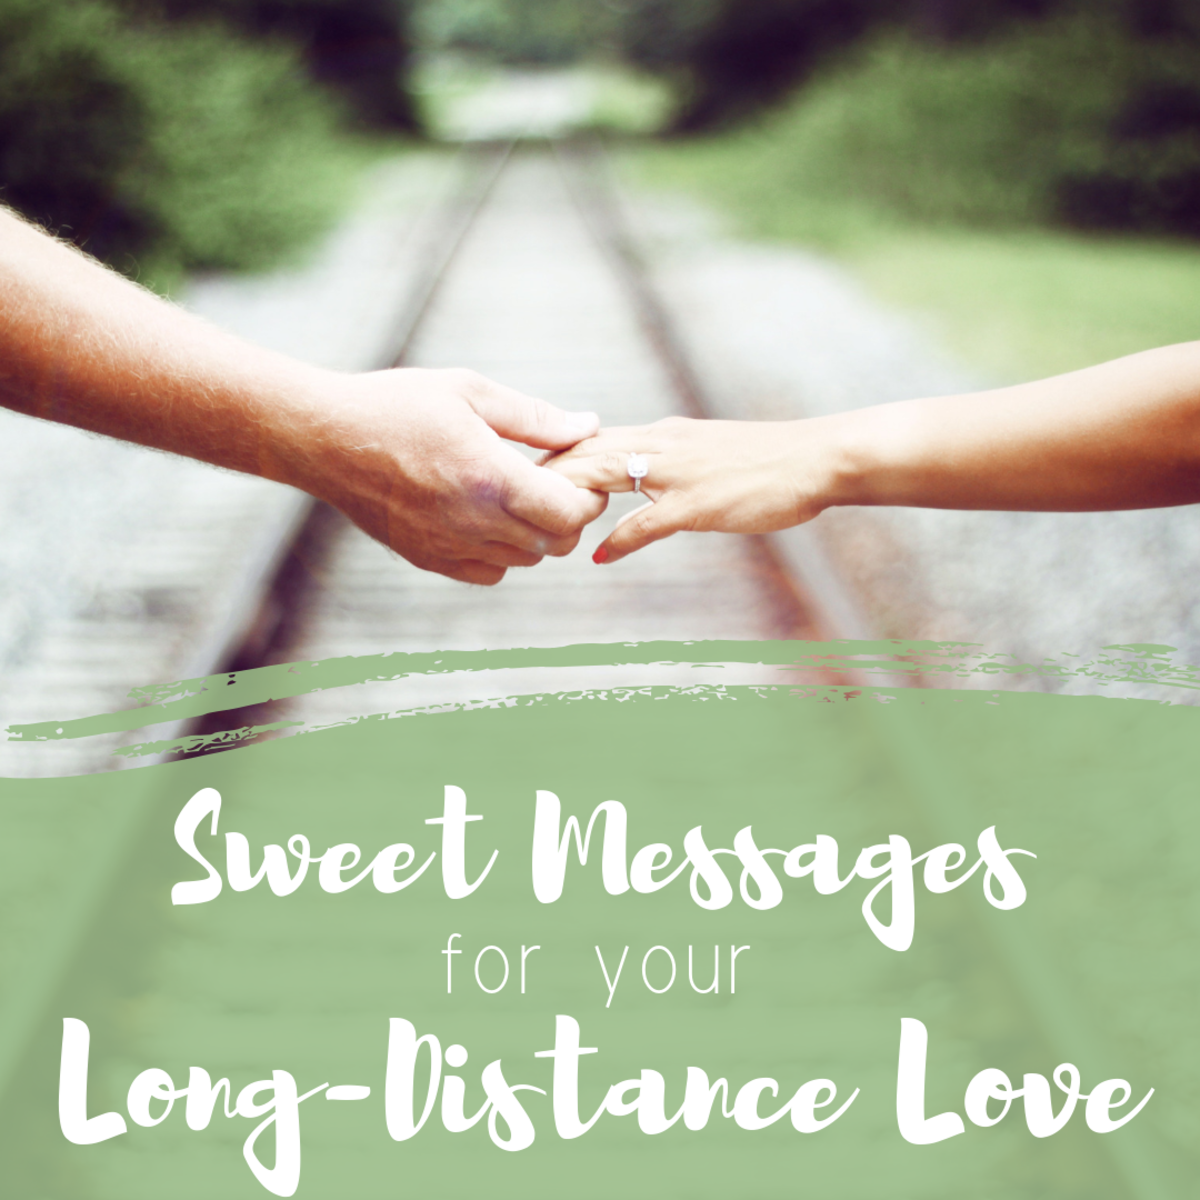 Want to show your faraway husband or boyfriend how much you miss him but can't quite find the words? Read on for sweet messages and quotes to include in your love note.